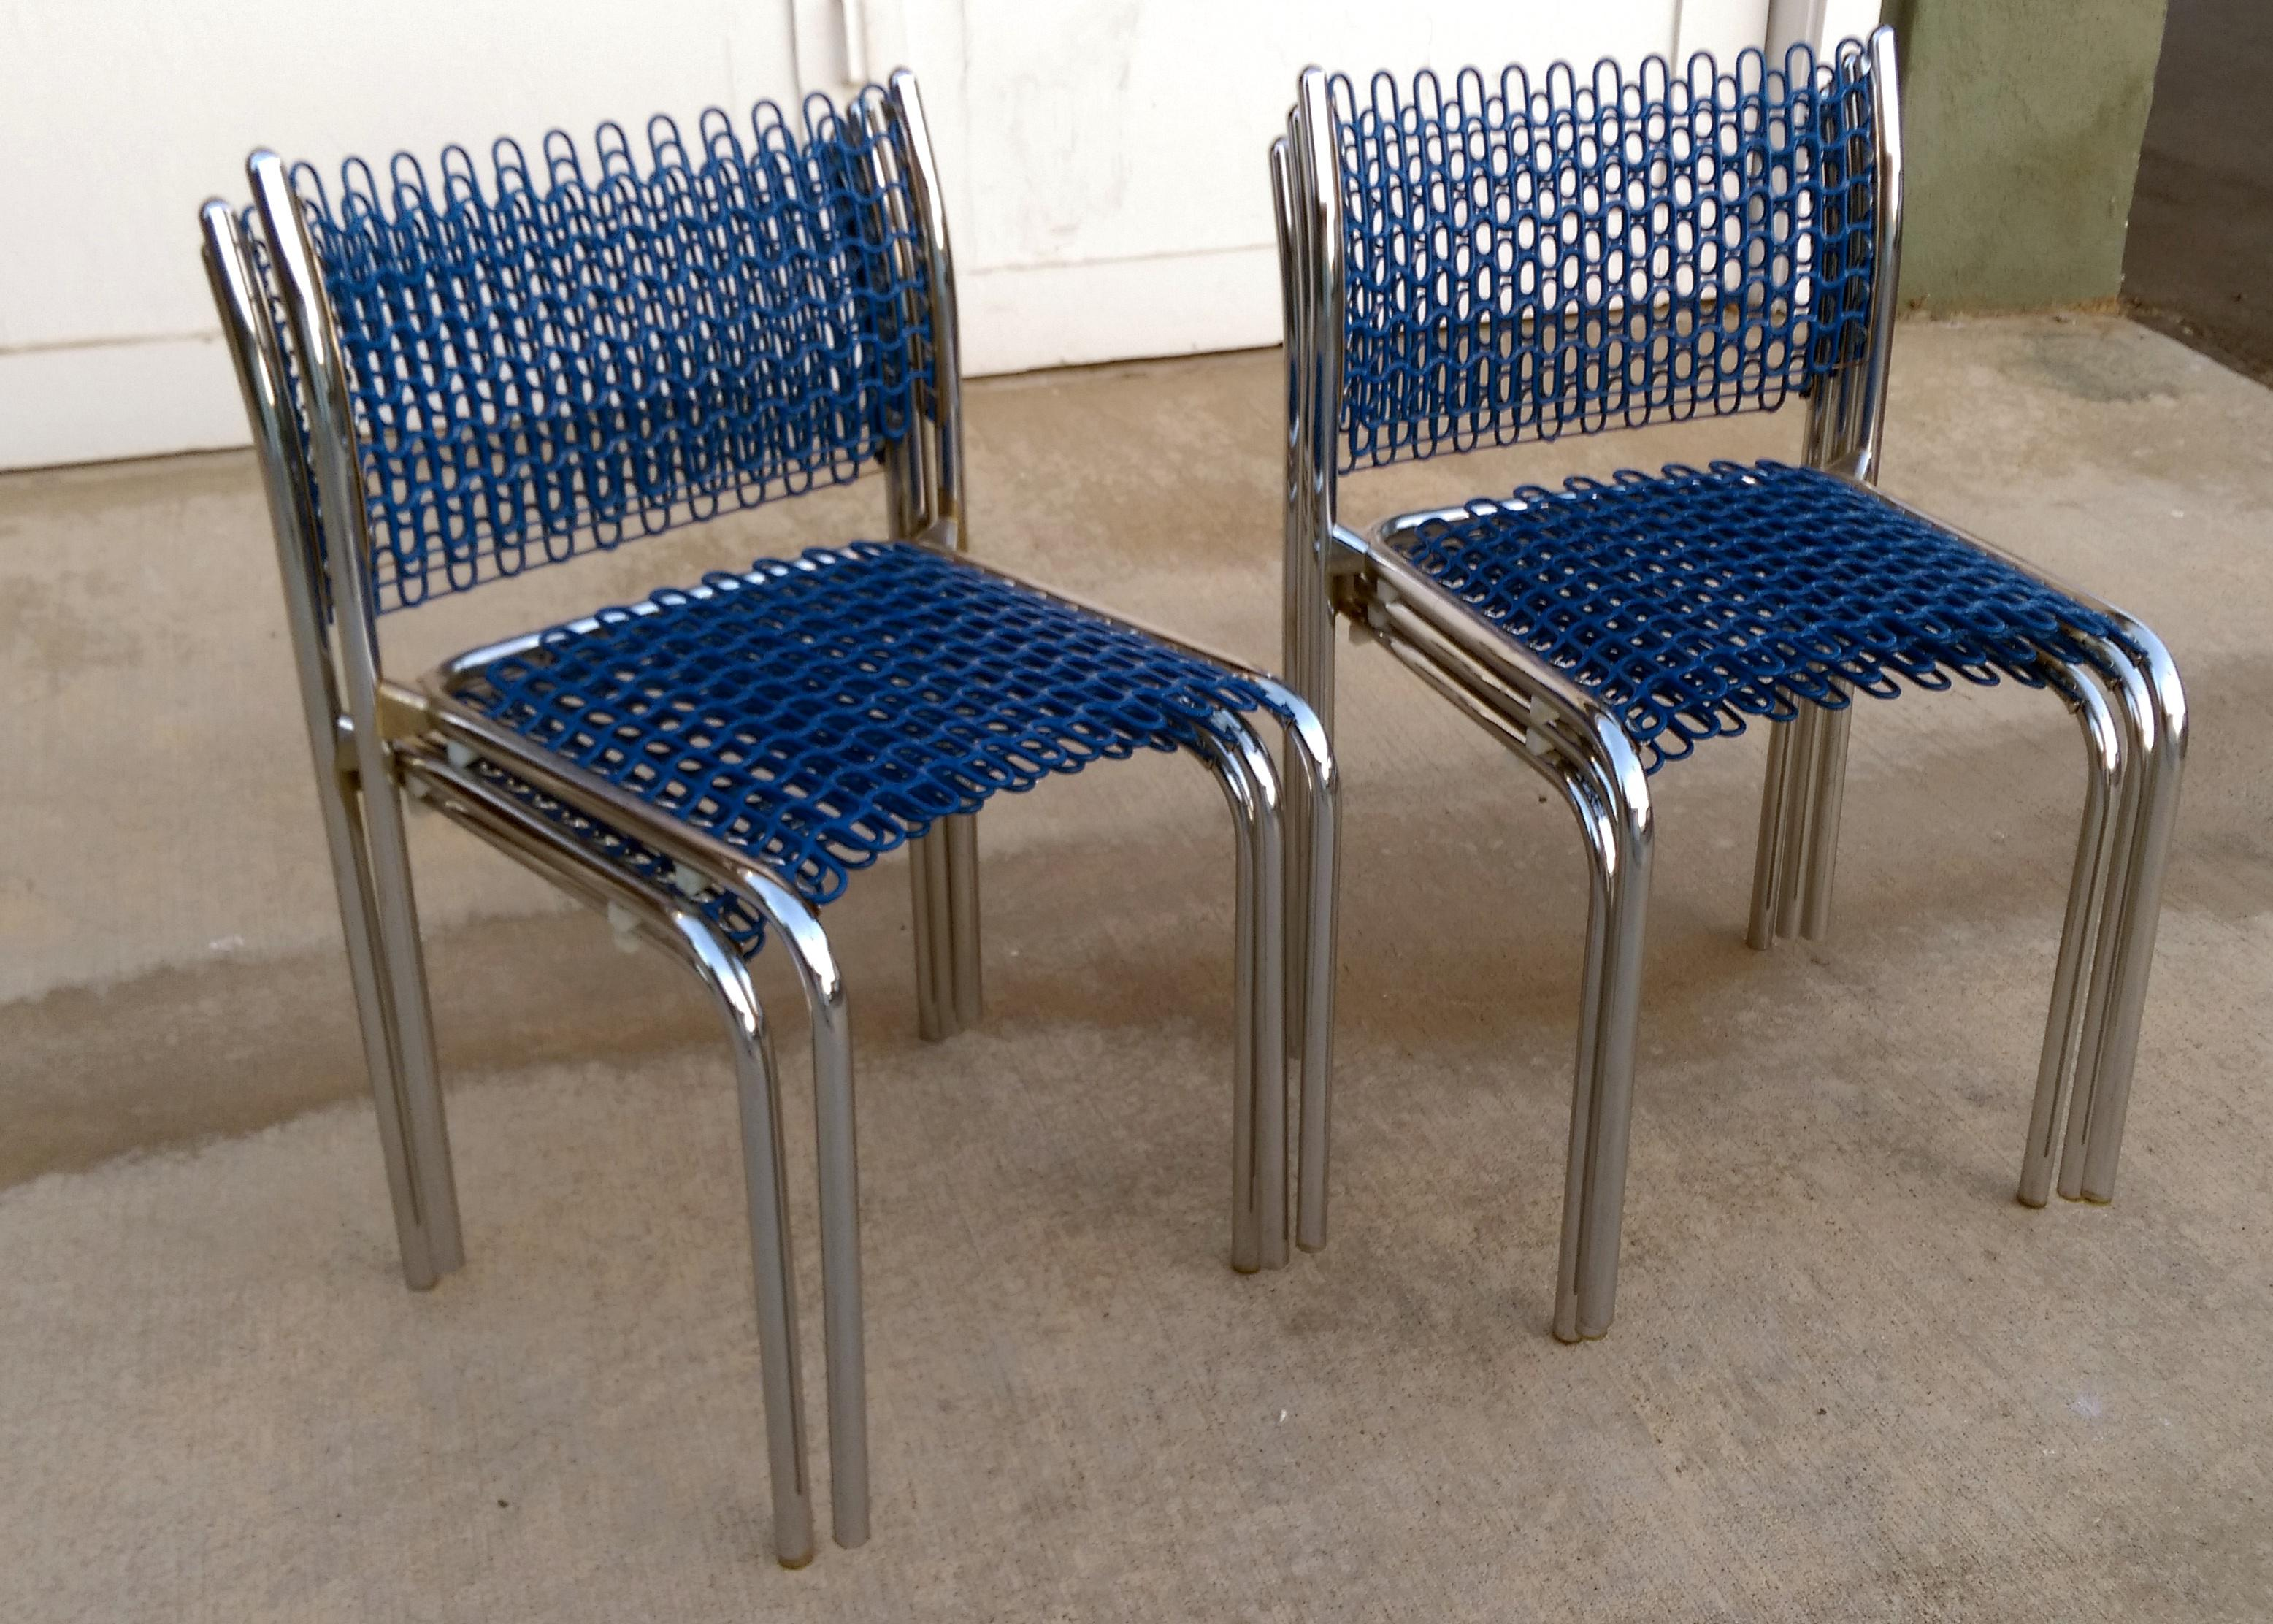 david rowland metal chair recliner parts thonet sof tech side chairs by set of 6 chairish for sale